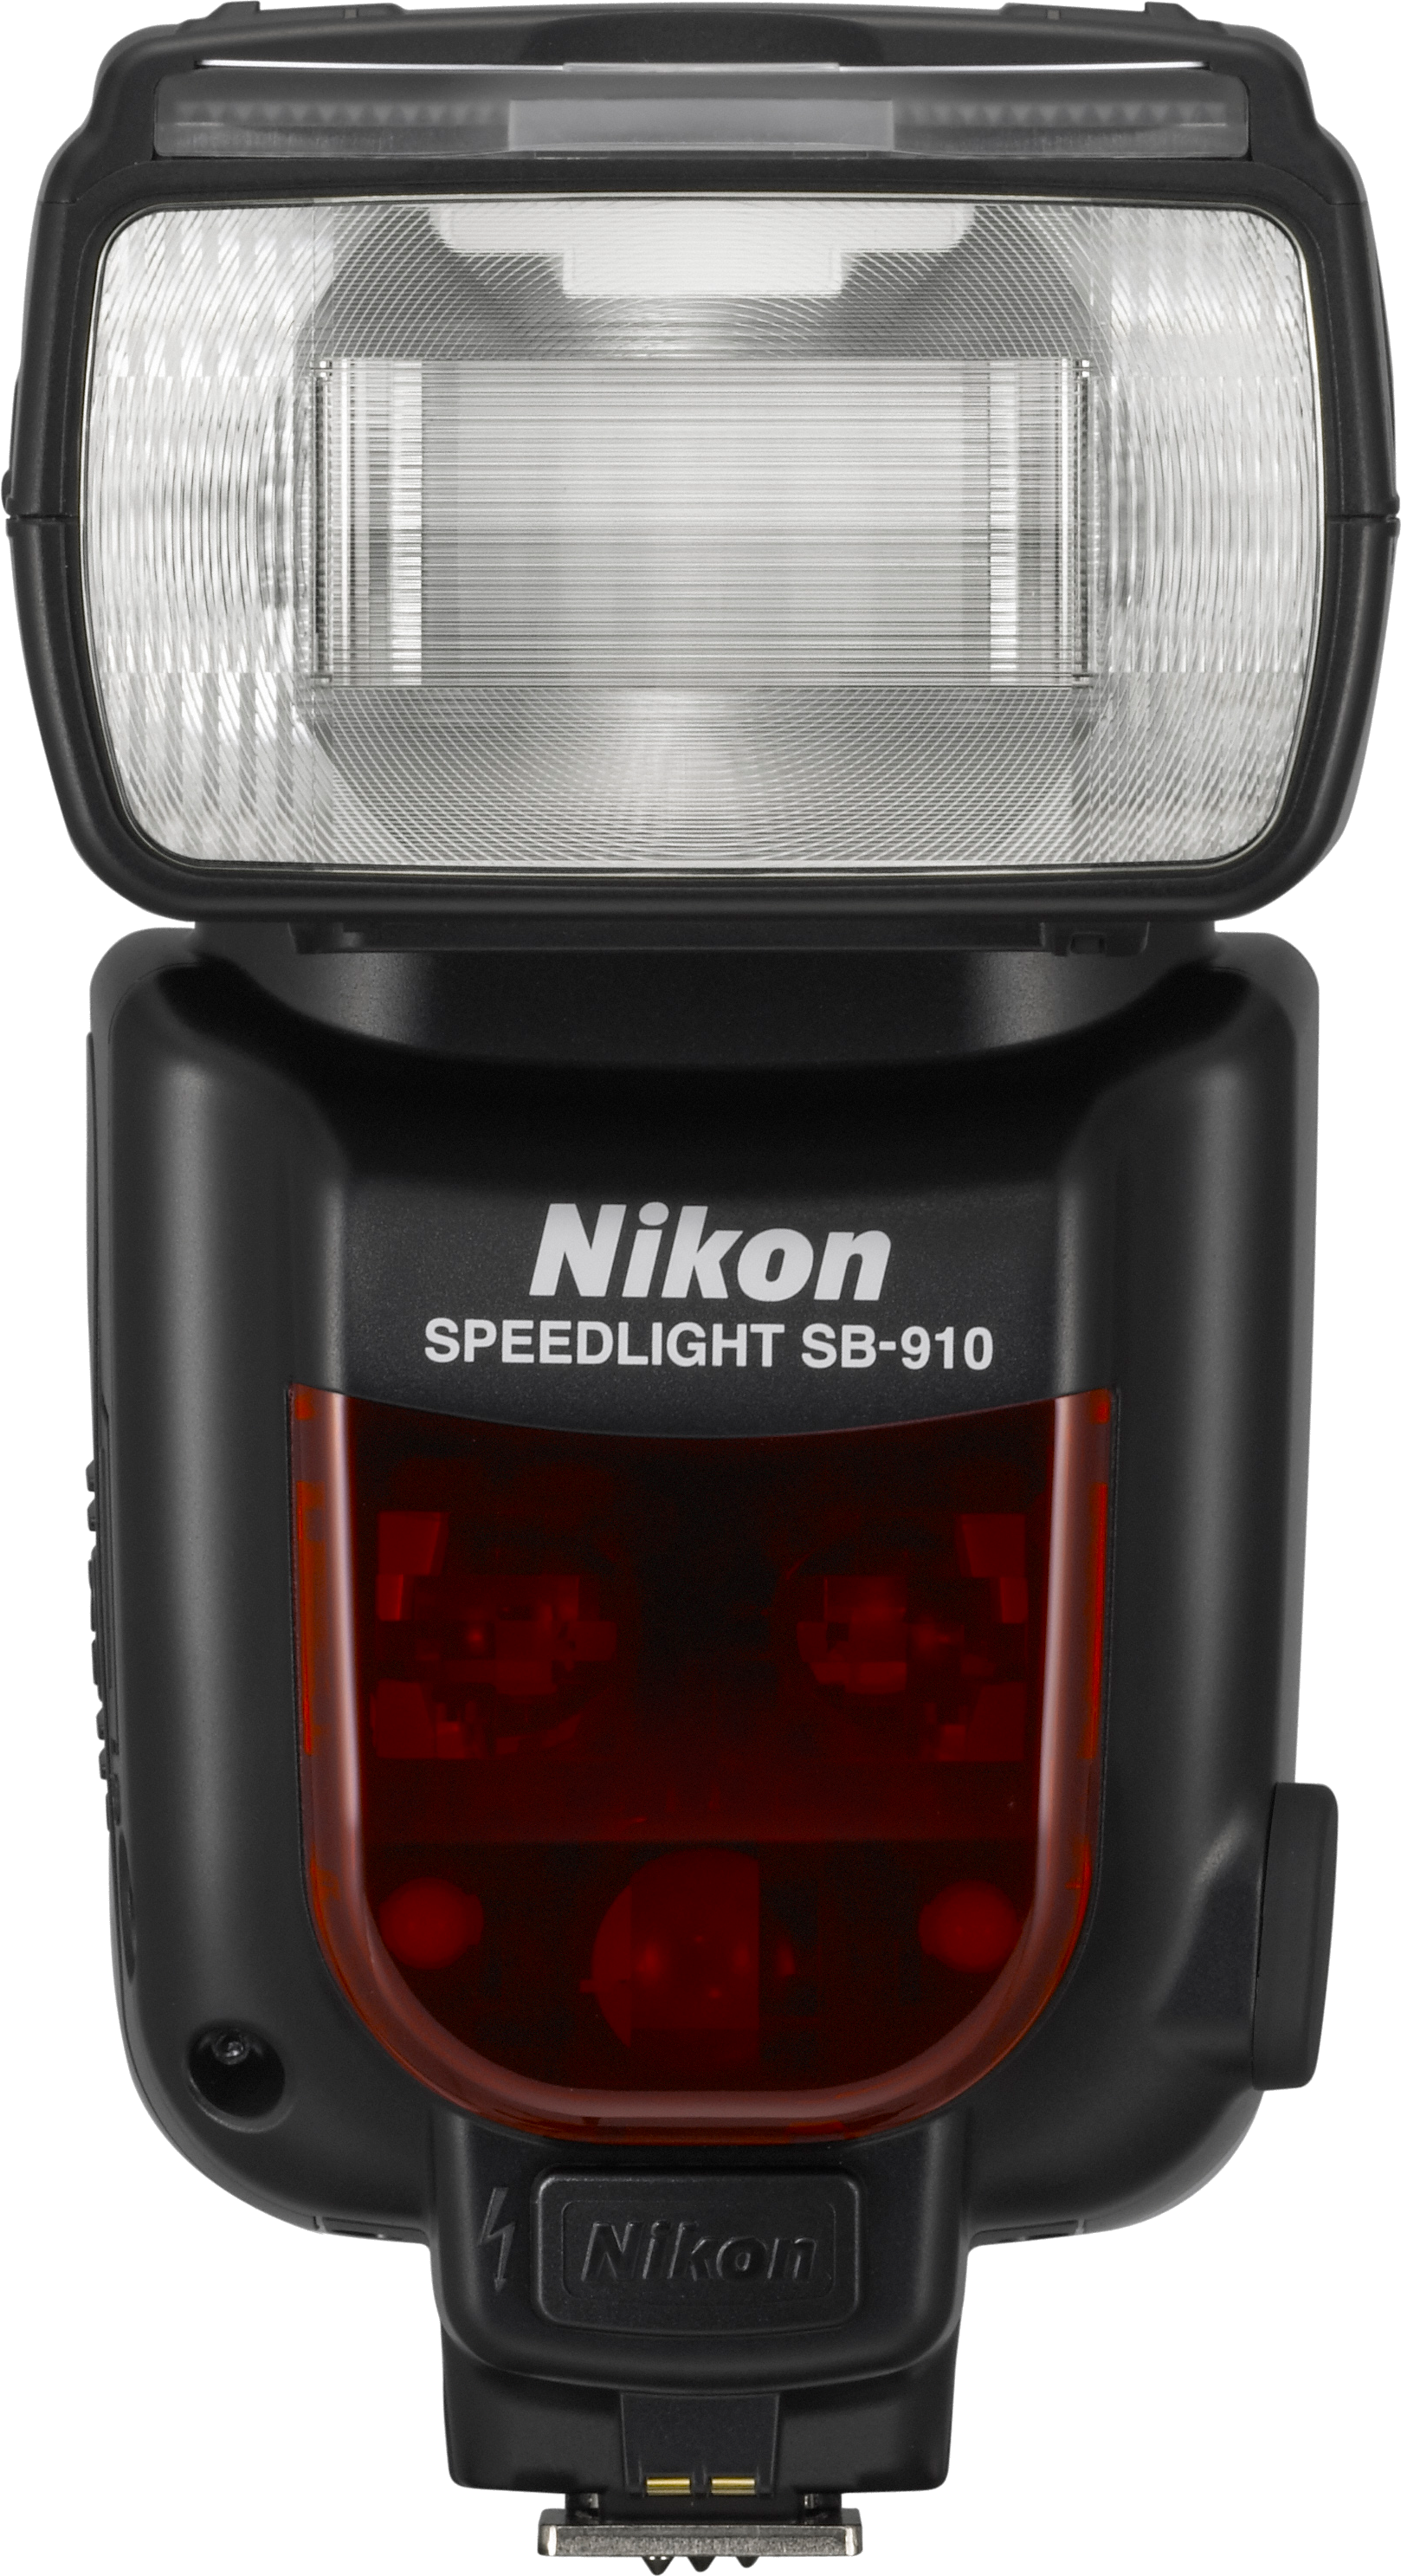 Nikon's flagship Speedlight for enthusiasts and professionals.